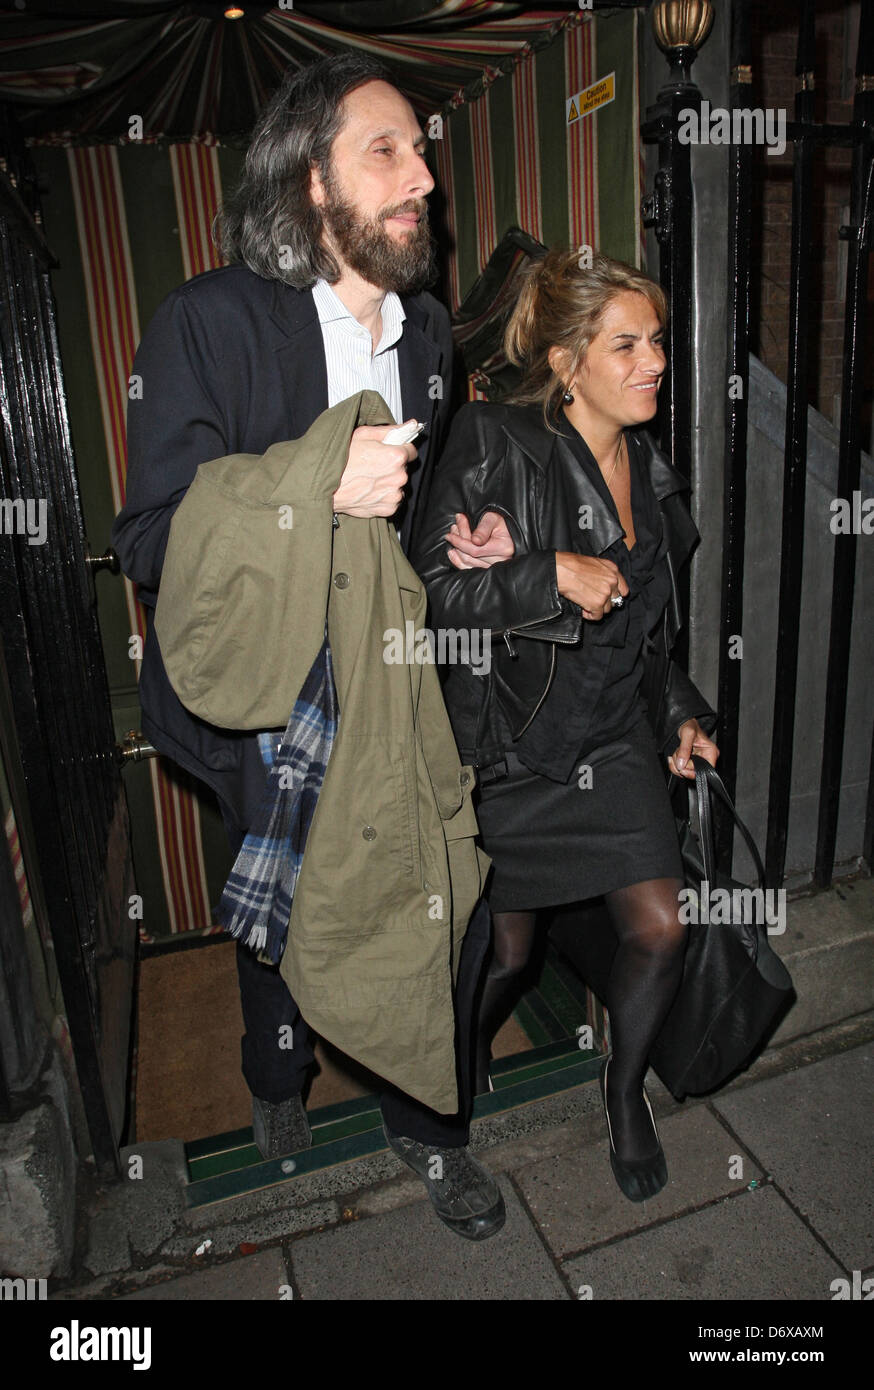 Tracy Emin Celebrities outside The Hawn Foundation Fundraising Gala held at Annabels London, England - 07.03.12 Stock Photo